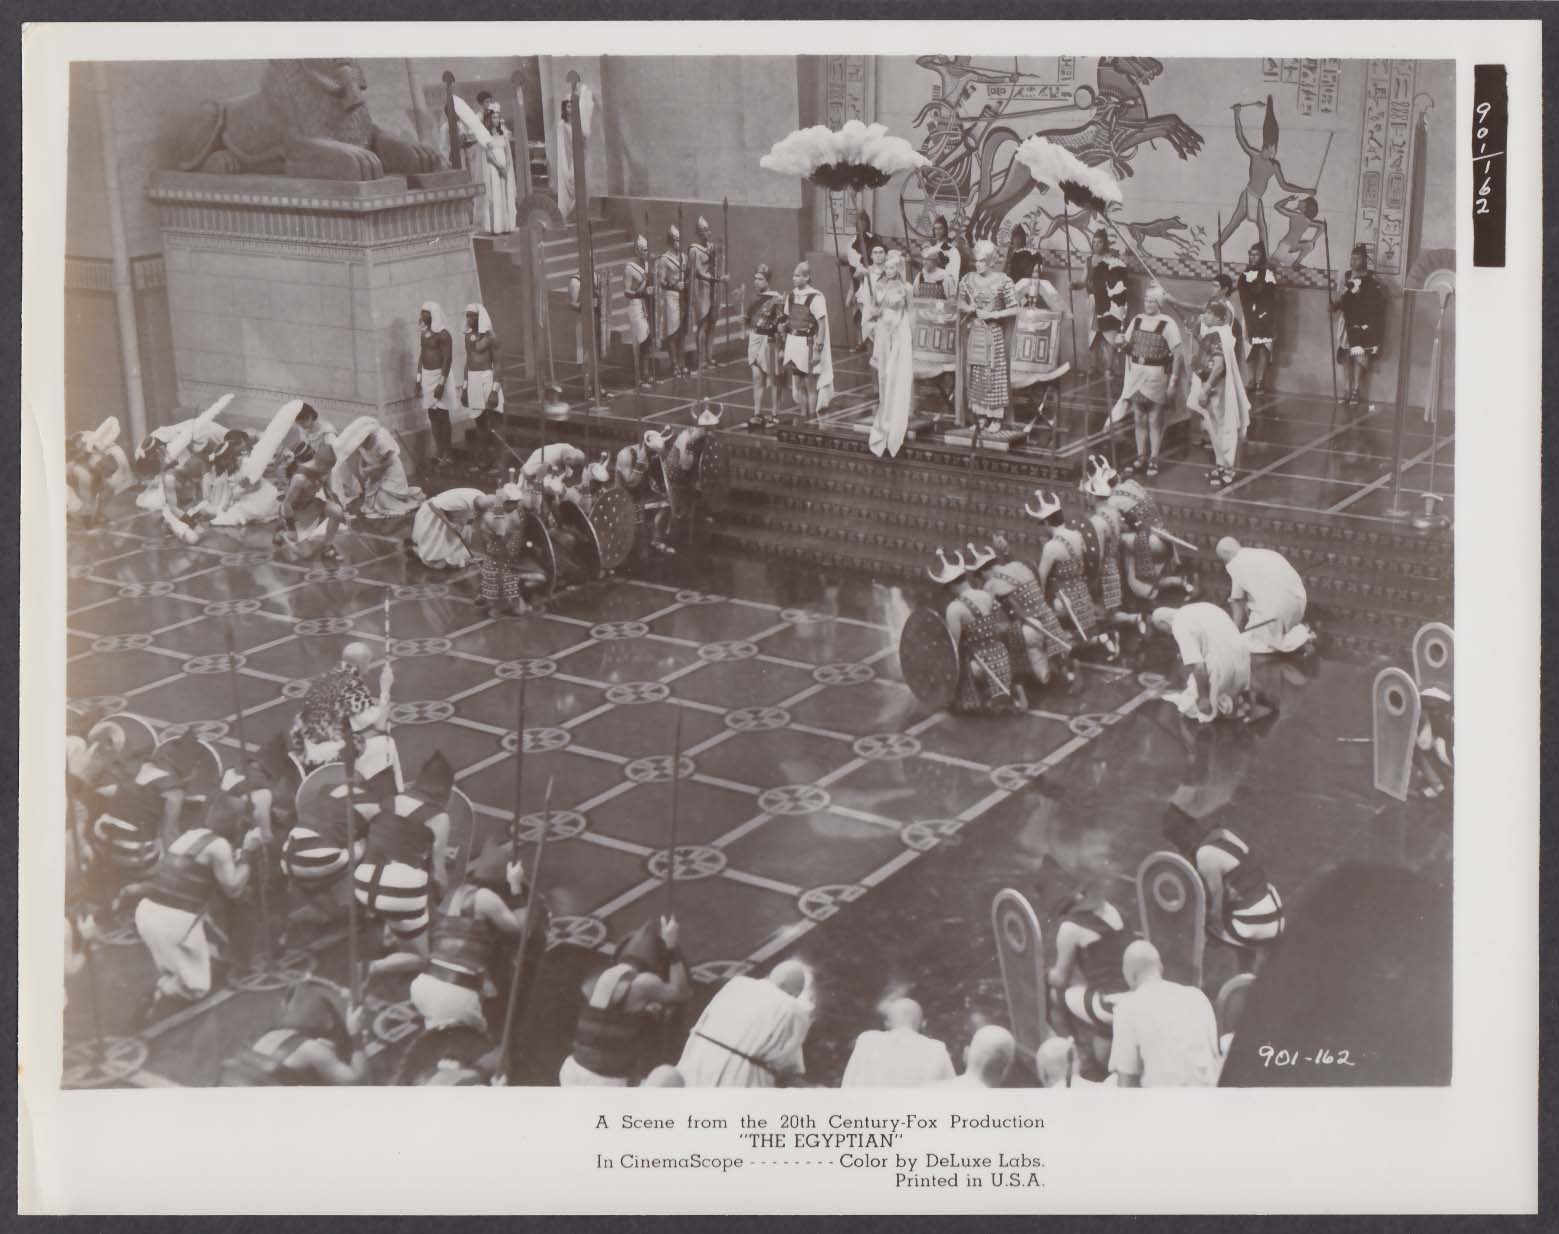 Pharaoh's court scene The Egyptian 8x10 photo 1954